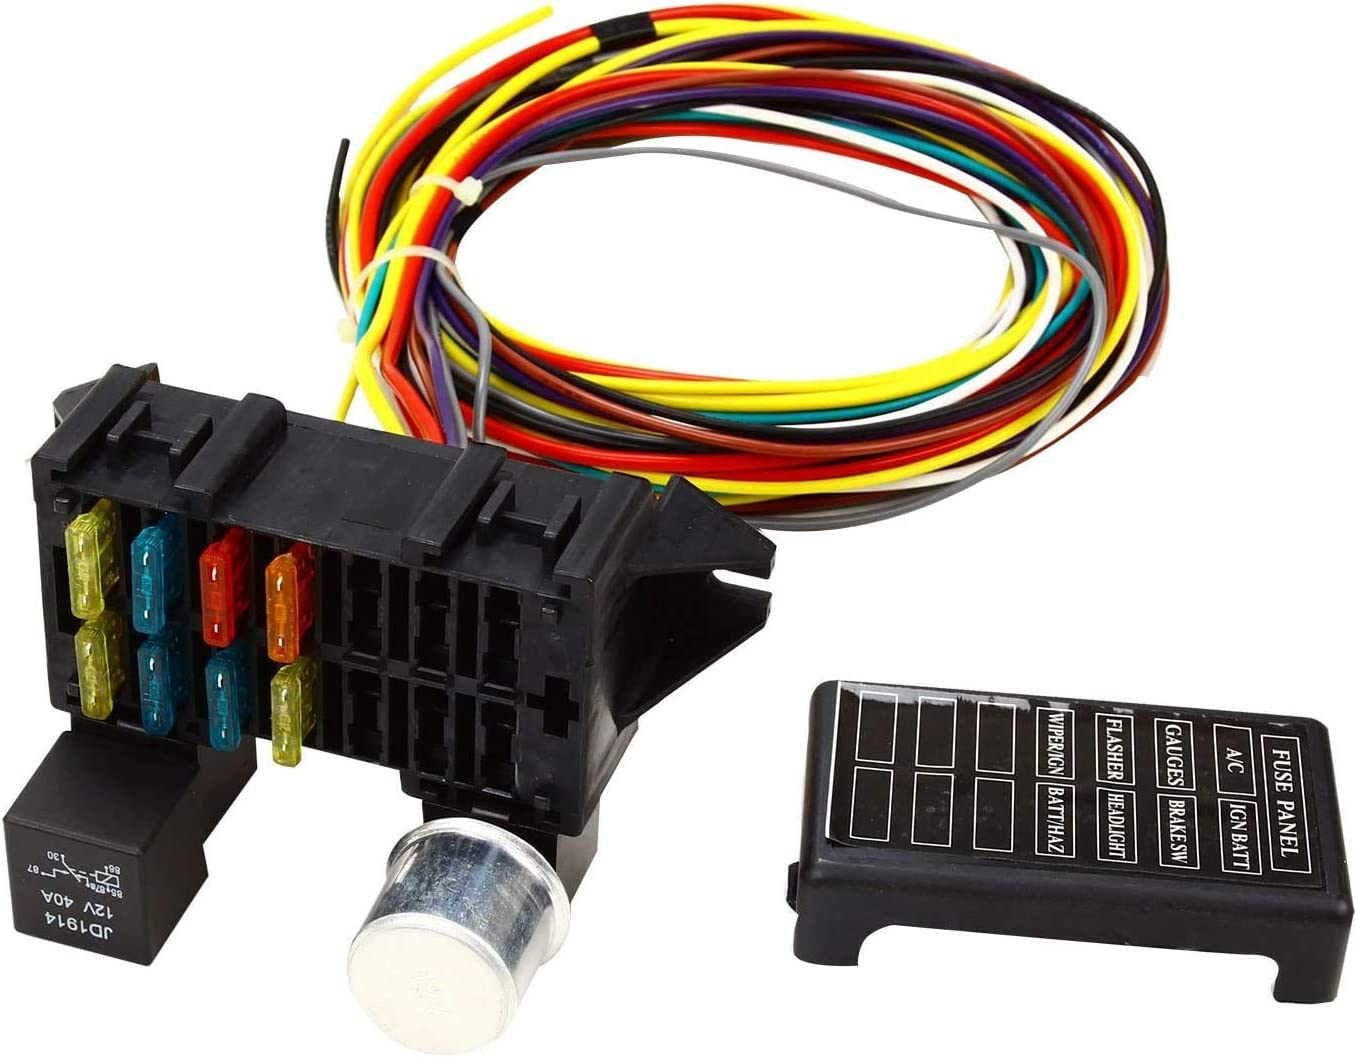 8 Circuit Fuse 12V Max 46% OFF Universal Wire Hot Muscle for Free shipping on posting reviews Harness Car Rod